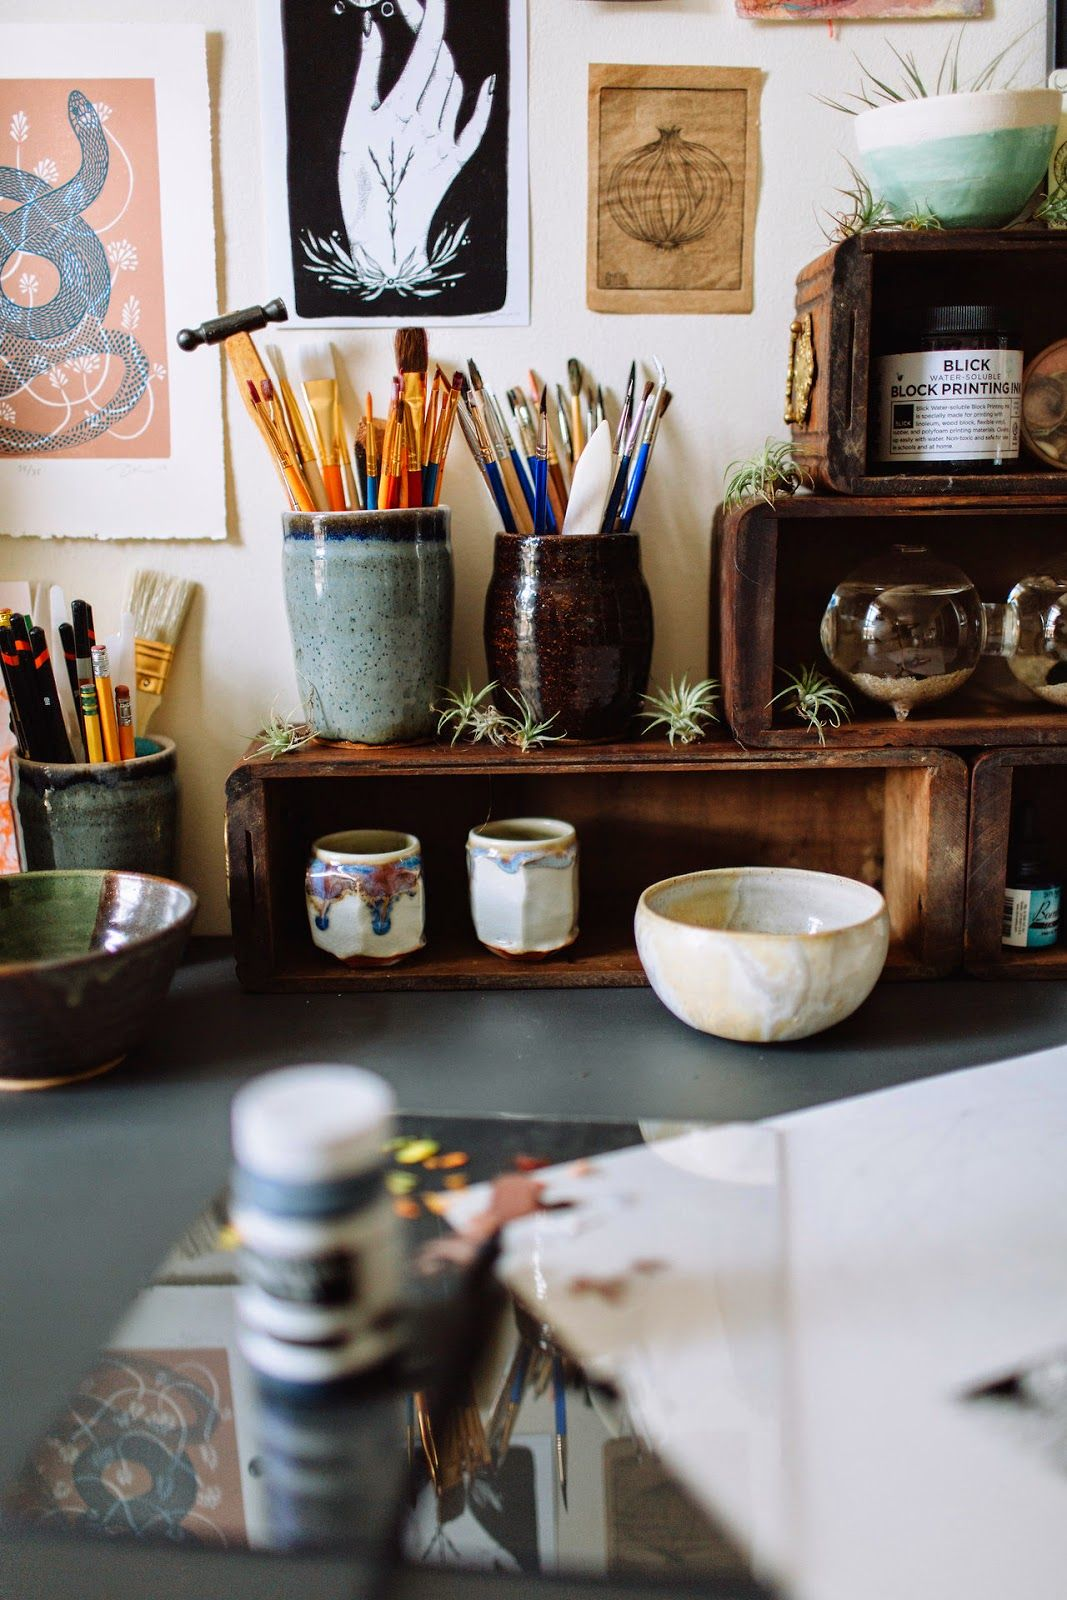 Art Studio Decor Moon To Moon The Workspace Of Artist Joëlle Workman